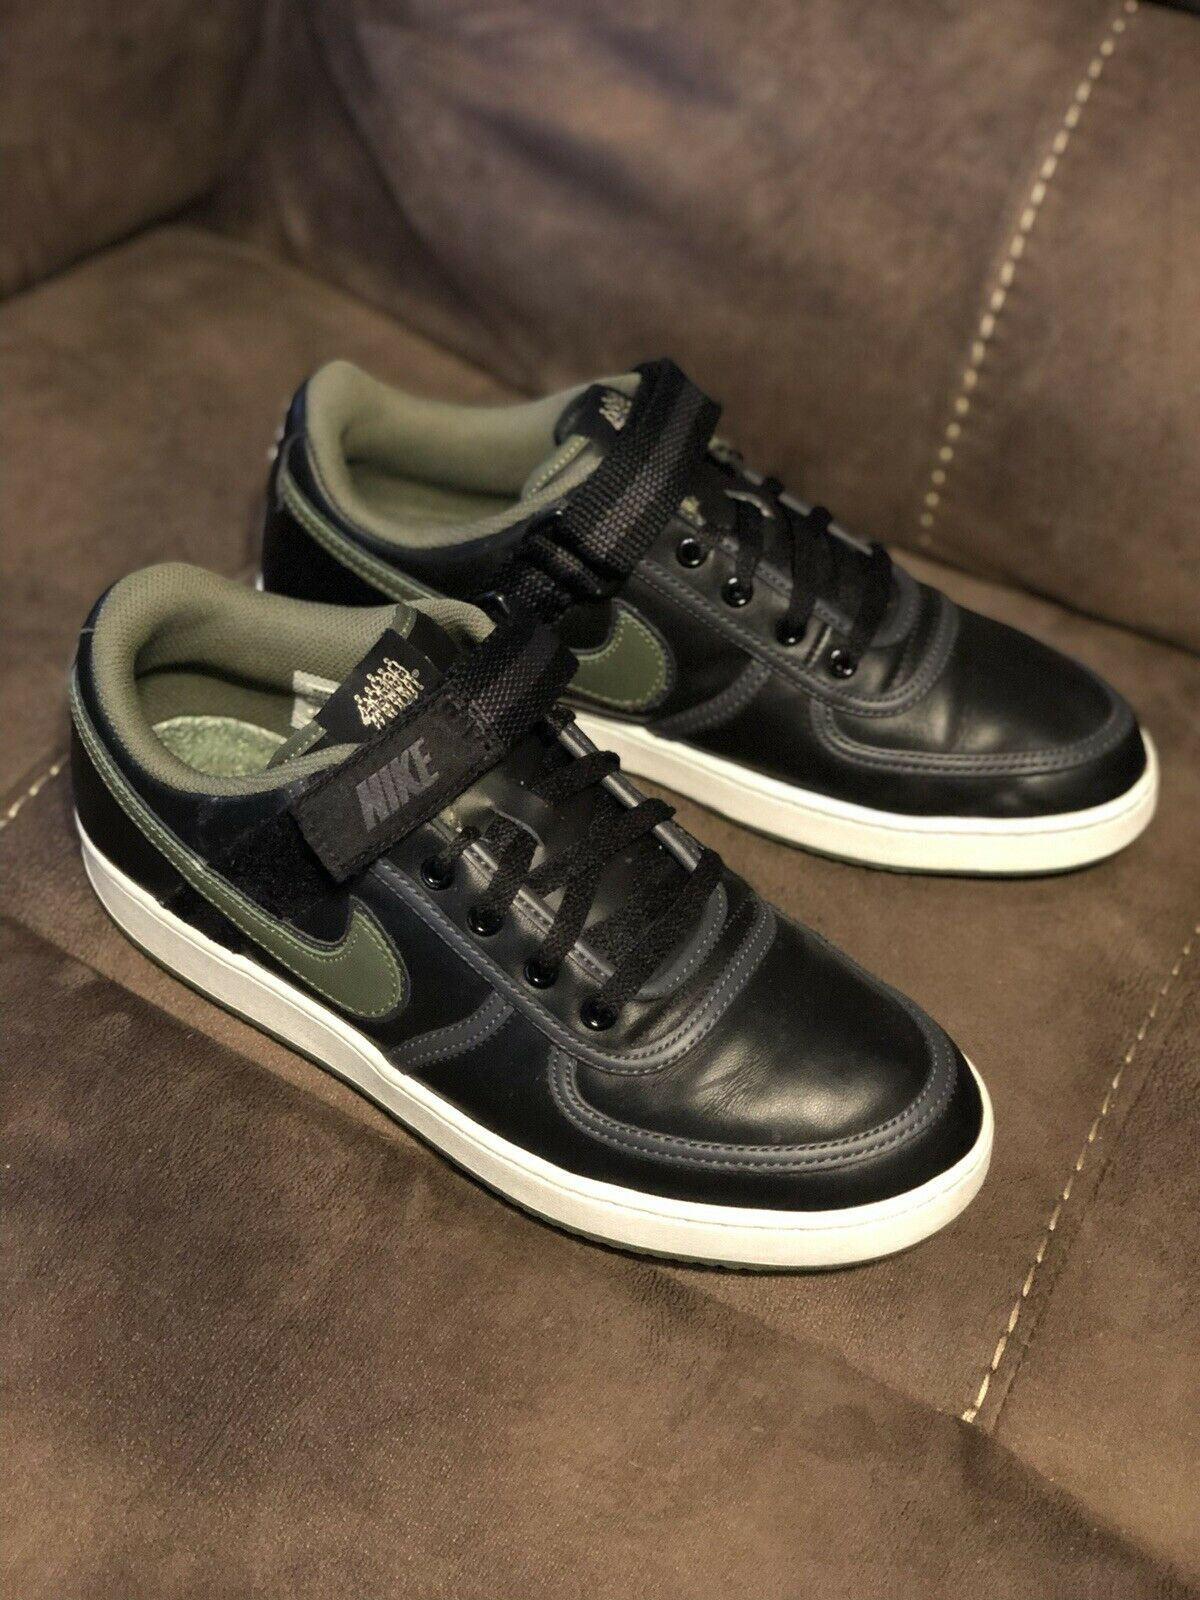 2007 Nike Vandal Low Independent Pleasure Club New Jersey Black Five Size 11.5